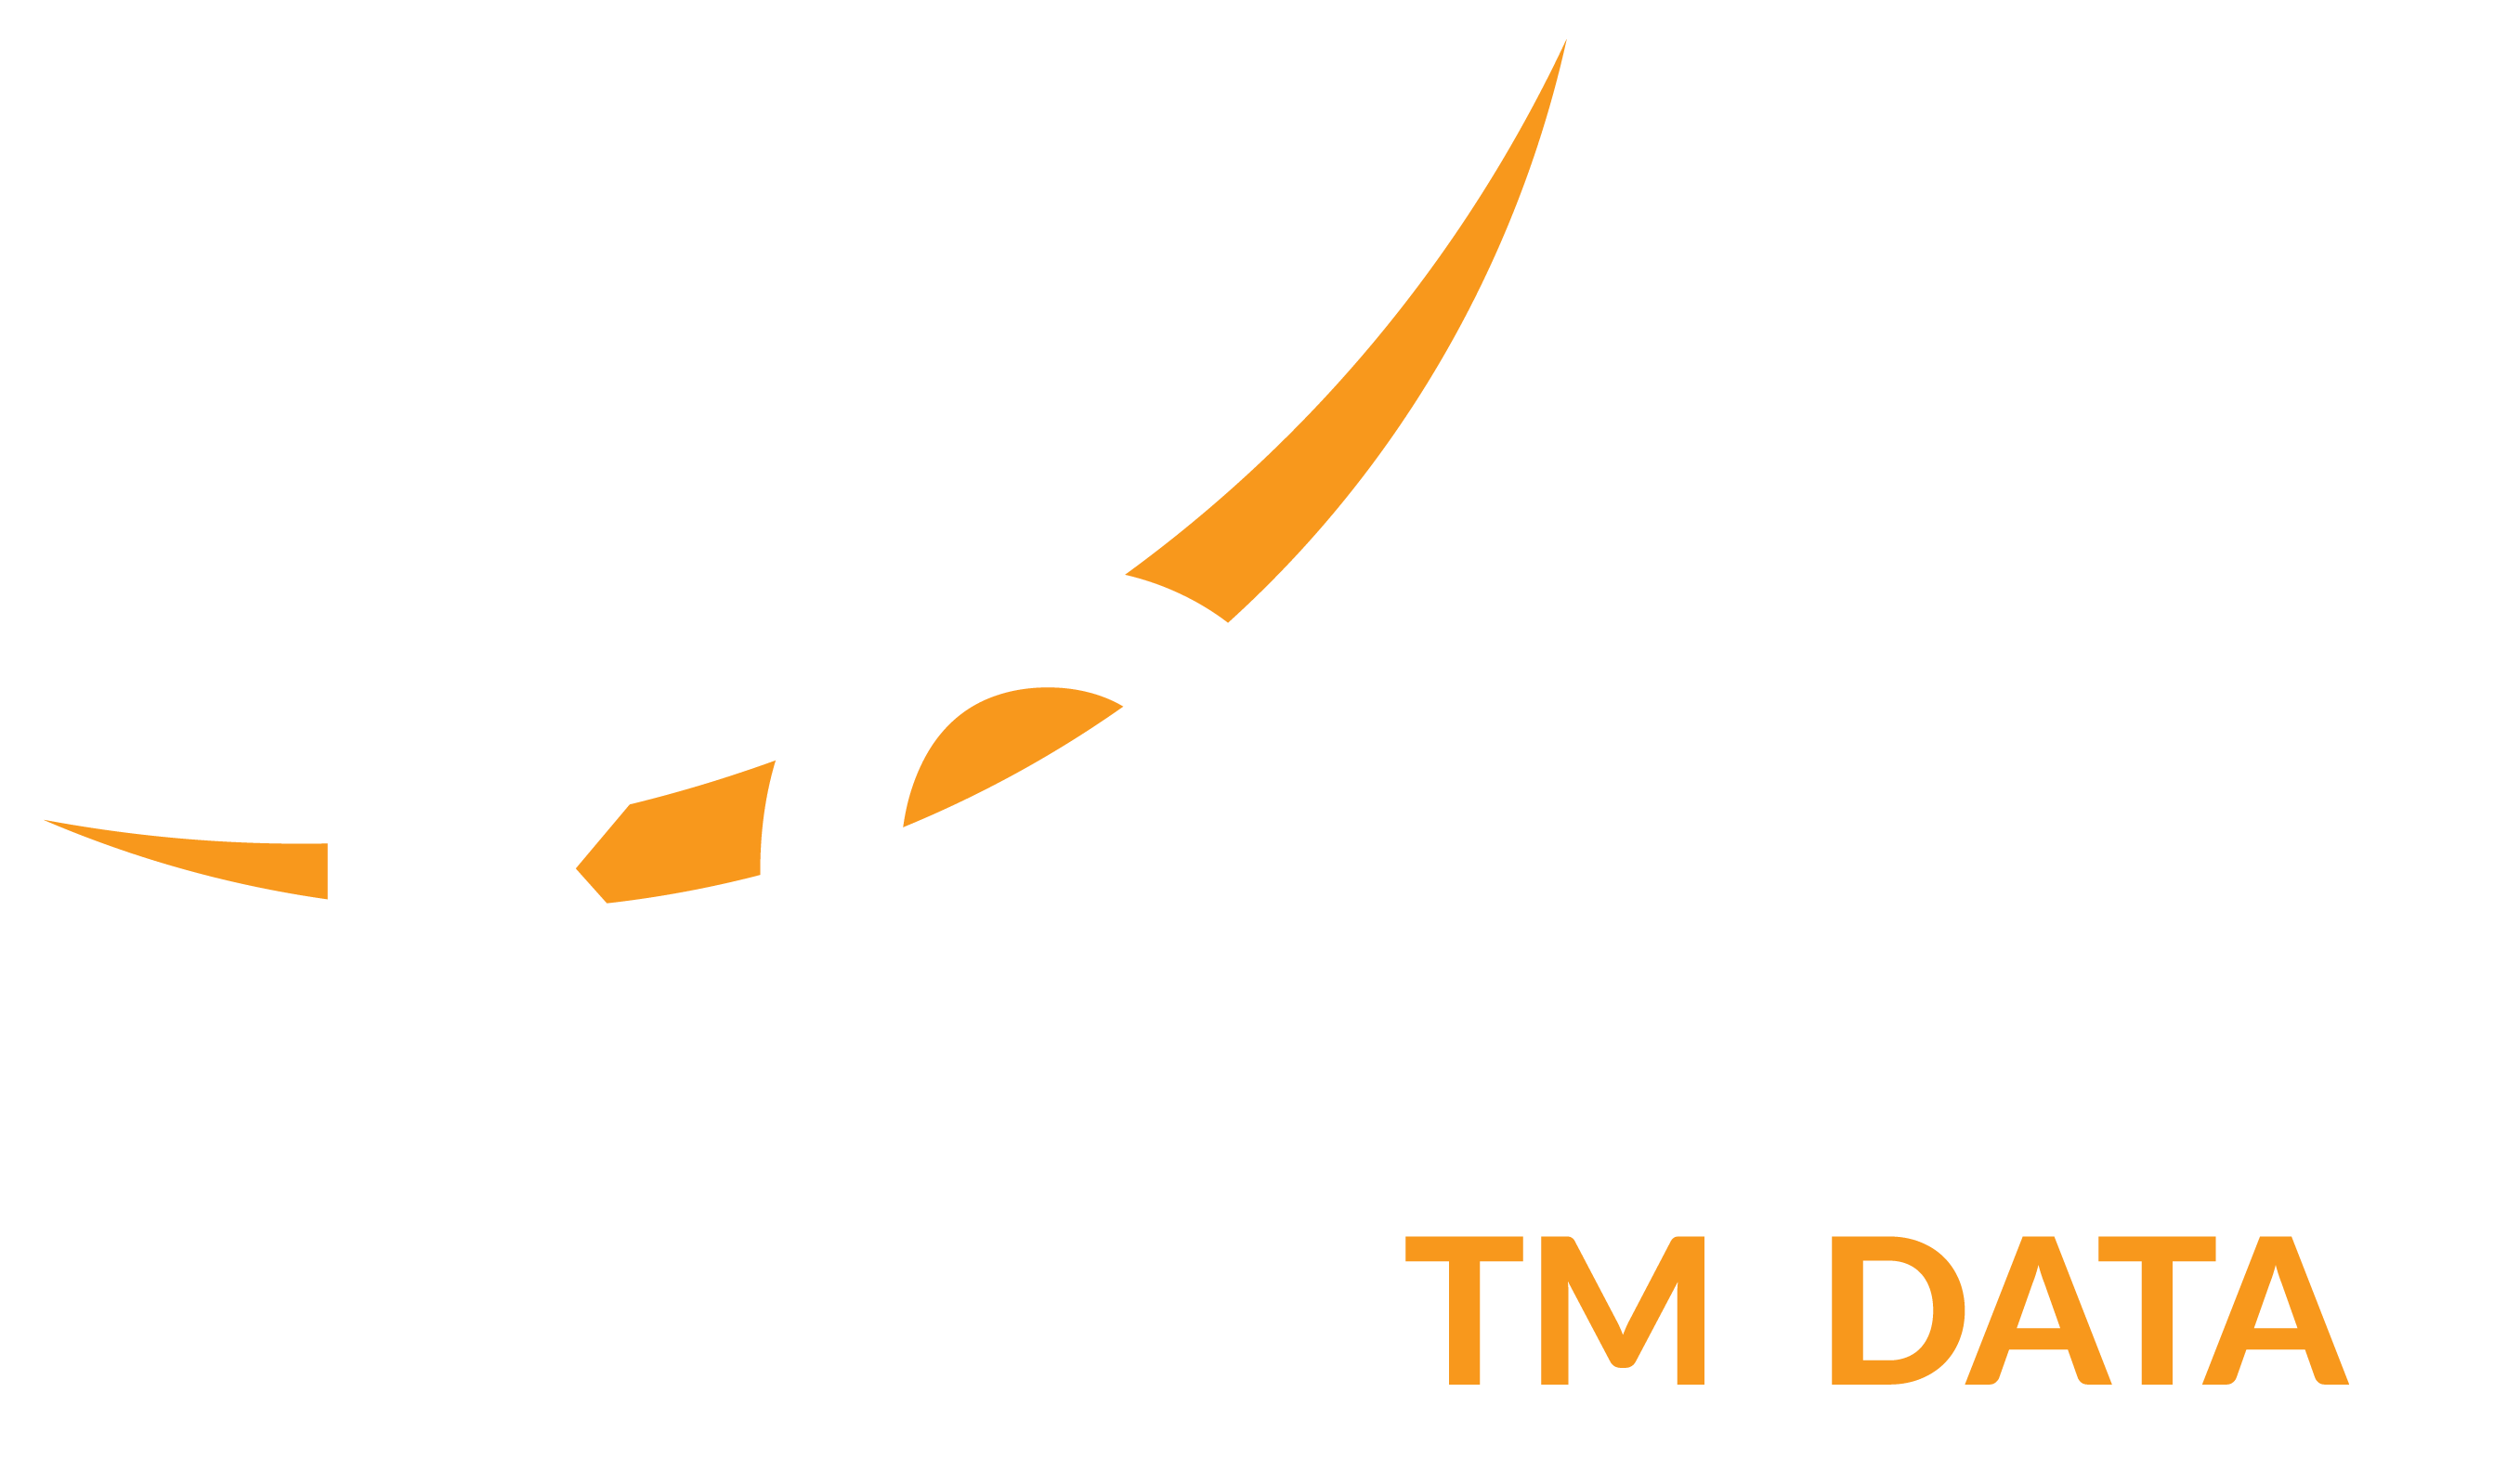 KORE-Brazil-TMDATA-logo-outlines-white-orange-registered.png